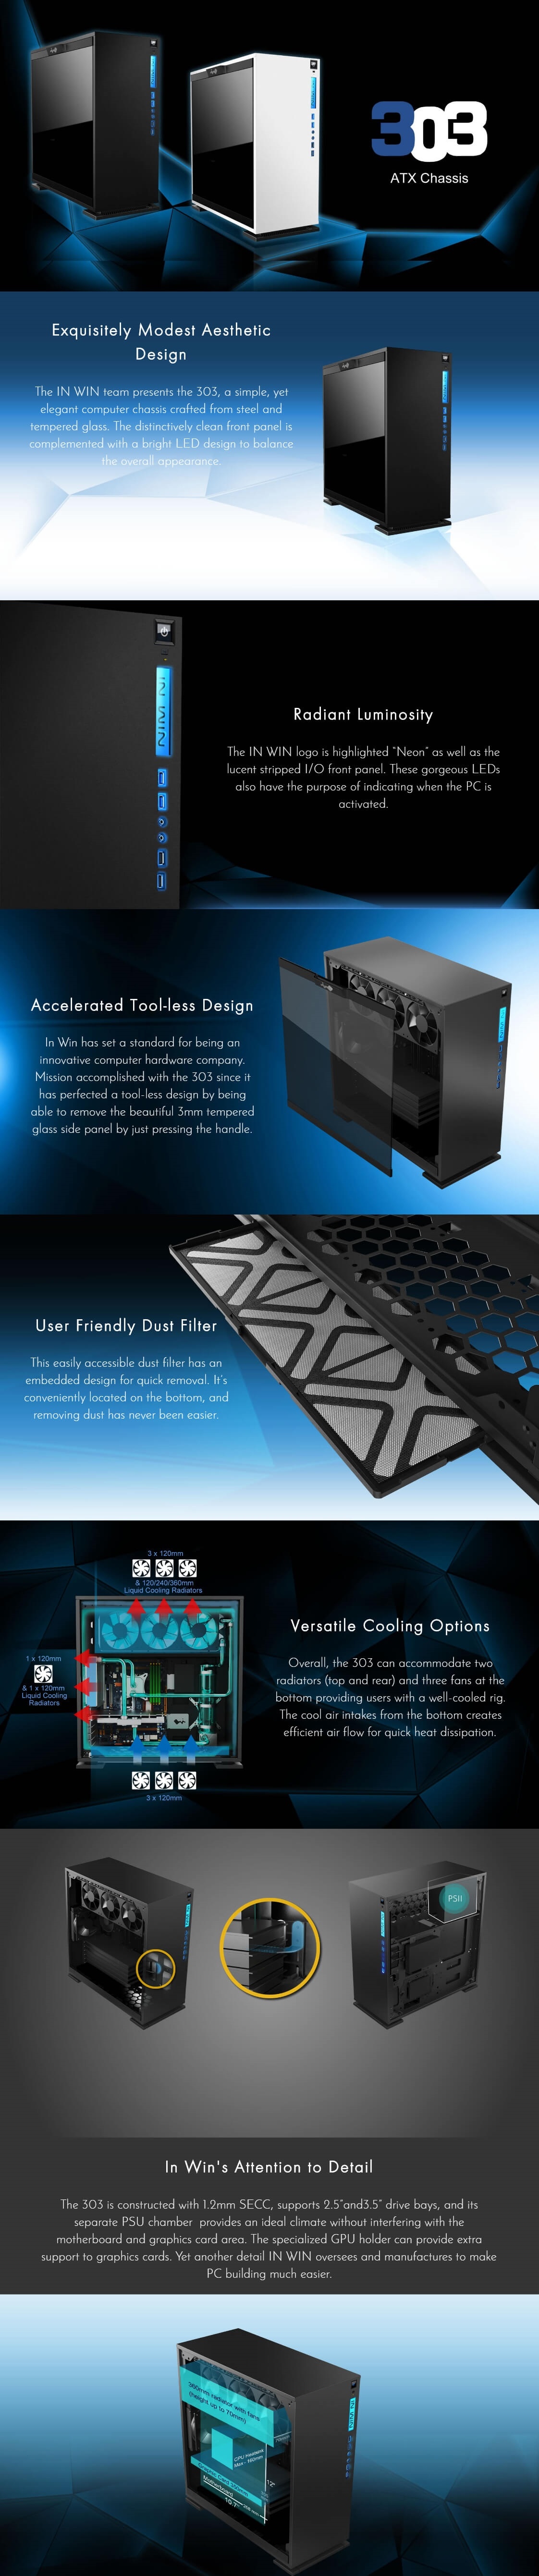 A large marketing image providing additional information about the product InWin 303 Black Mid Tower Case w/Tempered Glass Side Panel - Additional alt info not provided